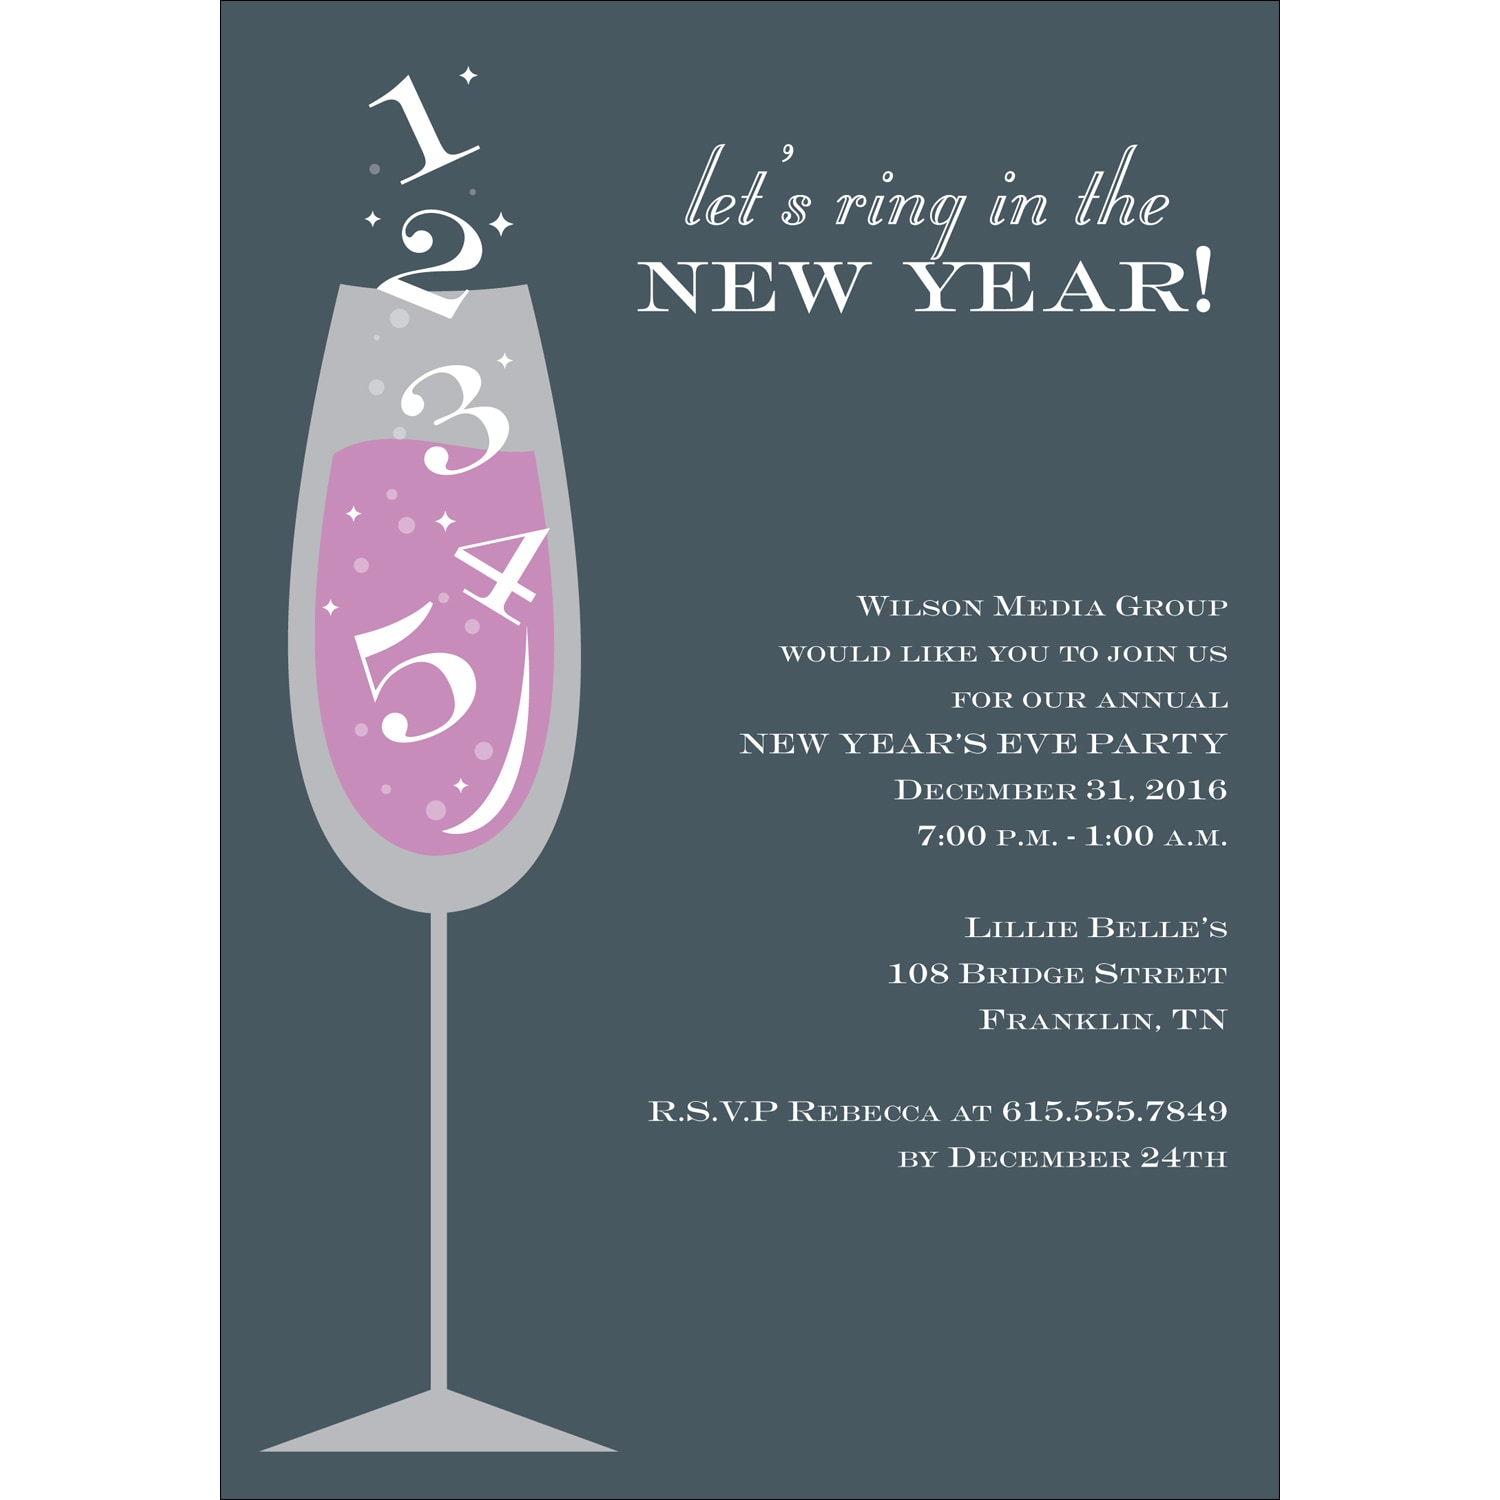 Ring in the New Year Party Invitation | acsgreetings.org